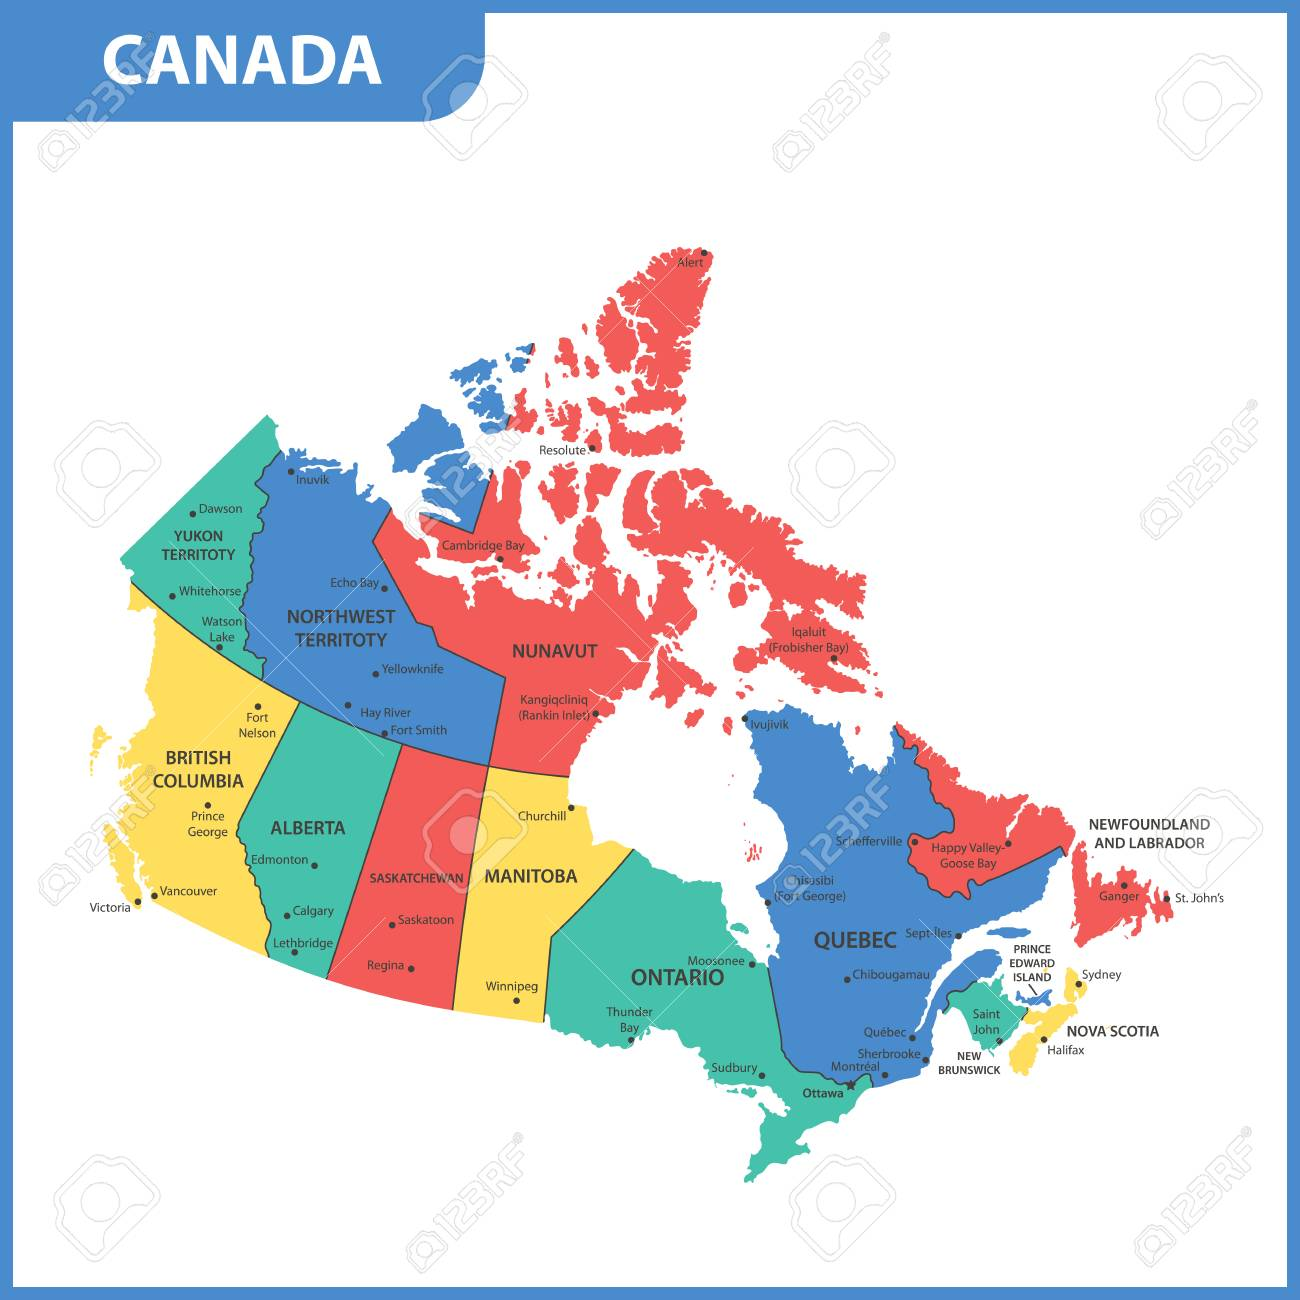 The Detailed Map Of The Canada With Regions Or States And Cities Royalty Free Cliparts Vectors And Stock Illustration Image 102774102